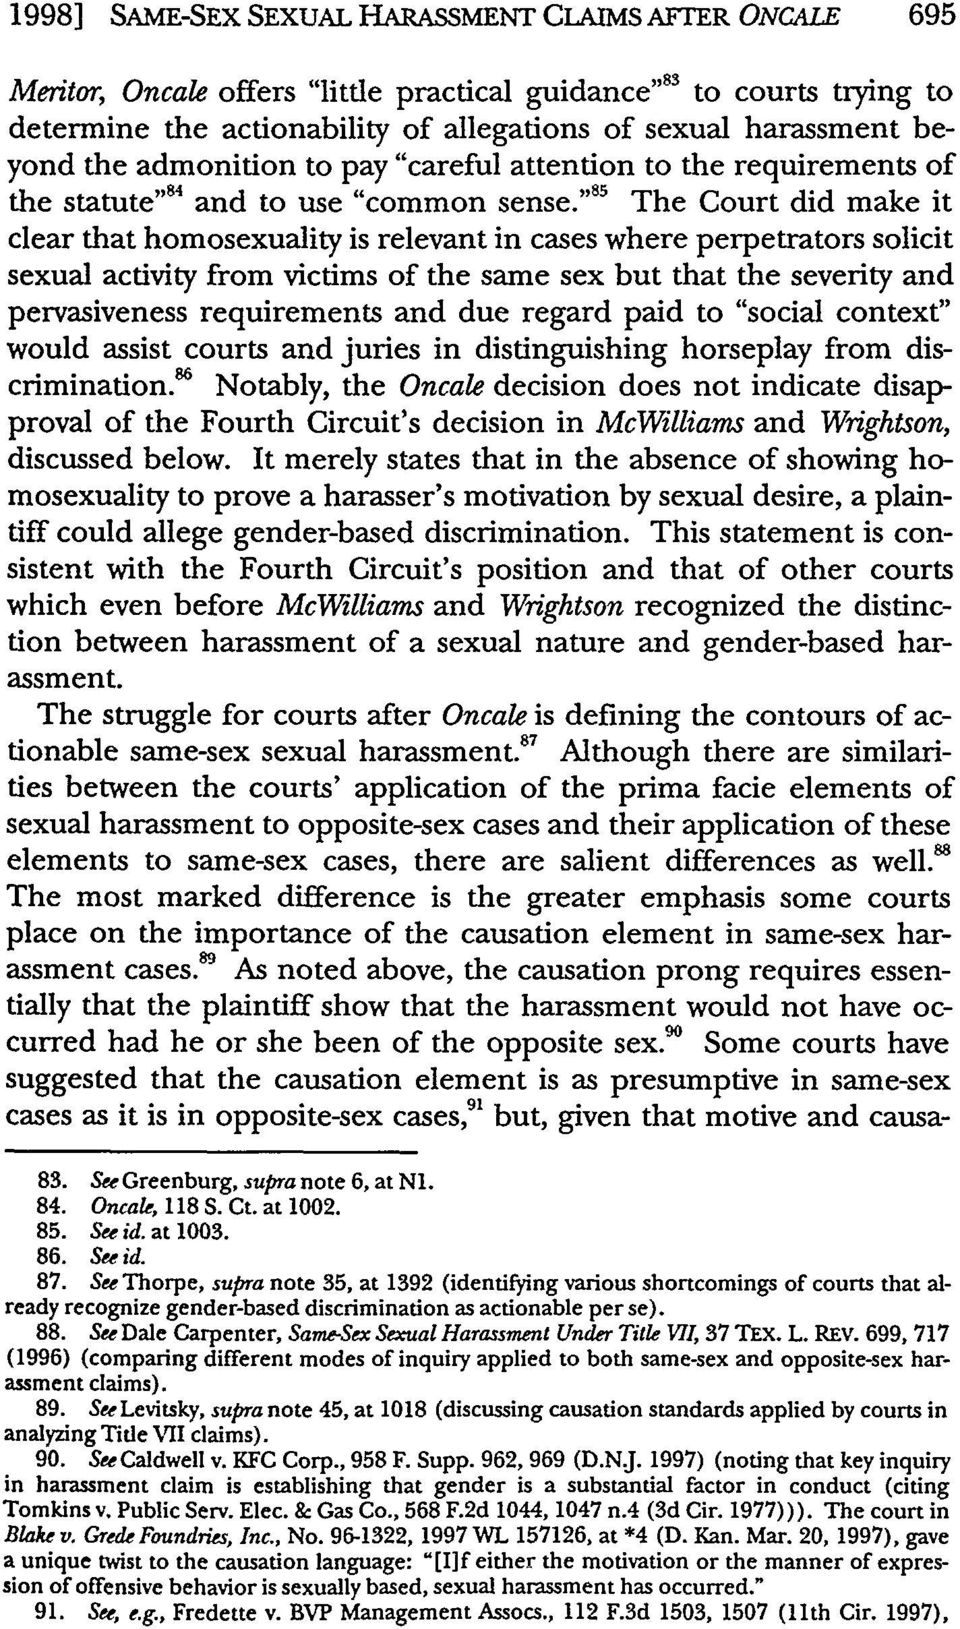 """ 85 The Court did make it clear that homosexuality is relevant in cases where perpetrators solicit sexual activity from victims of the same sex but that the severity and pervasiveness requirements"